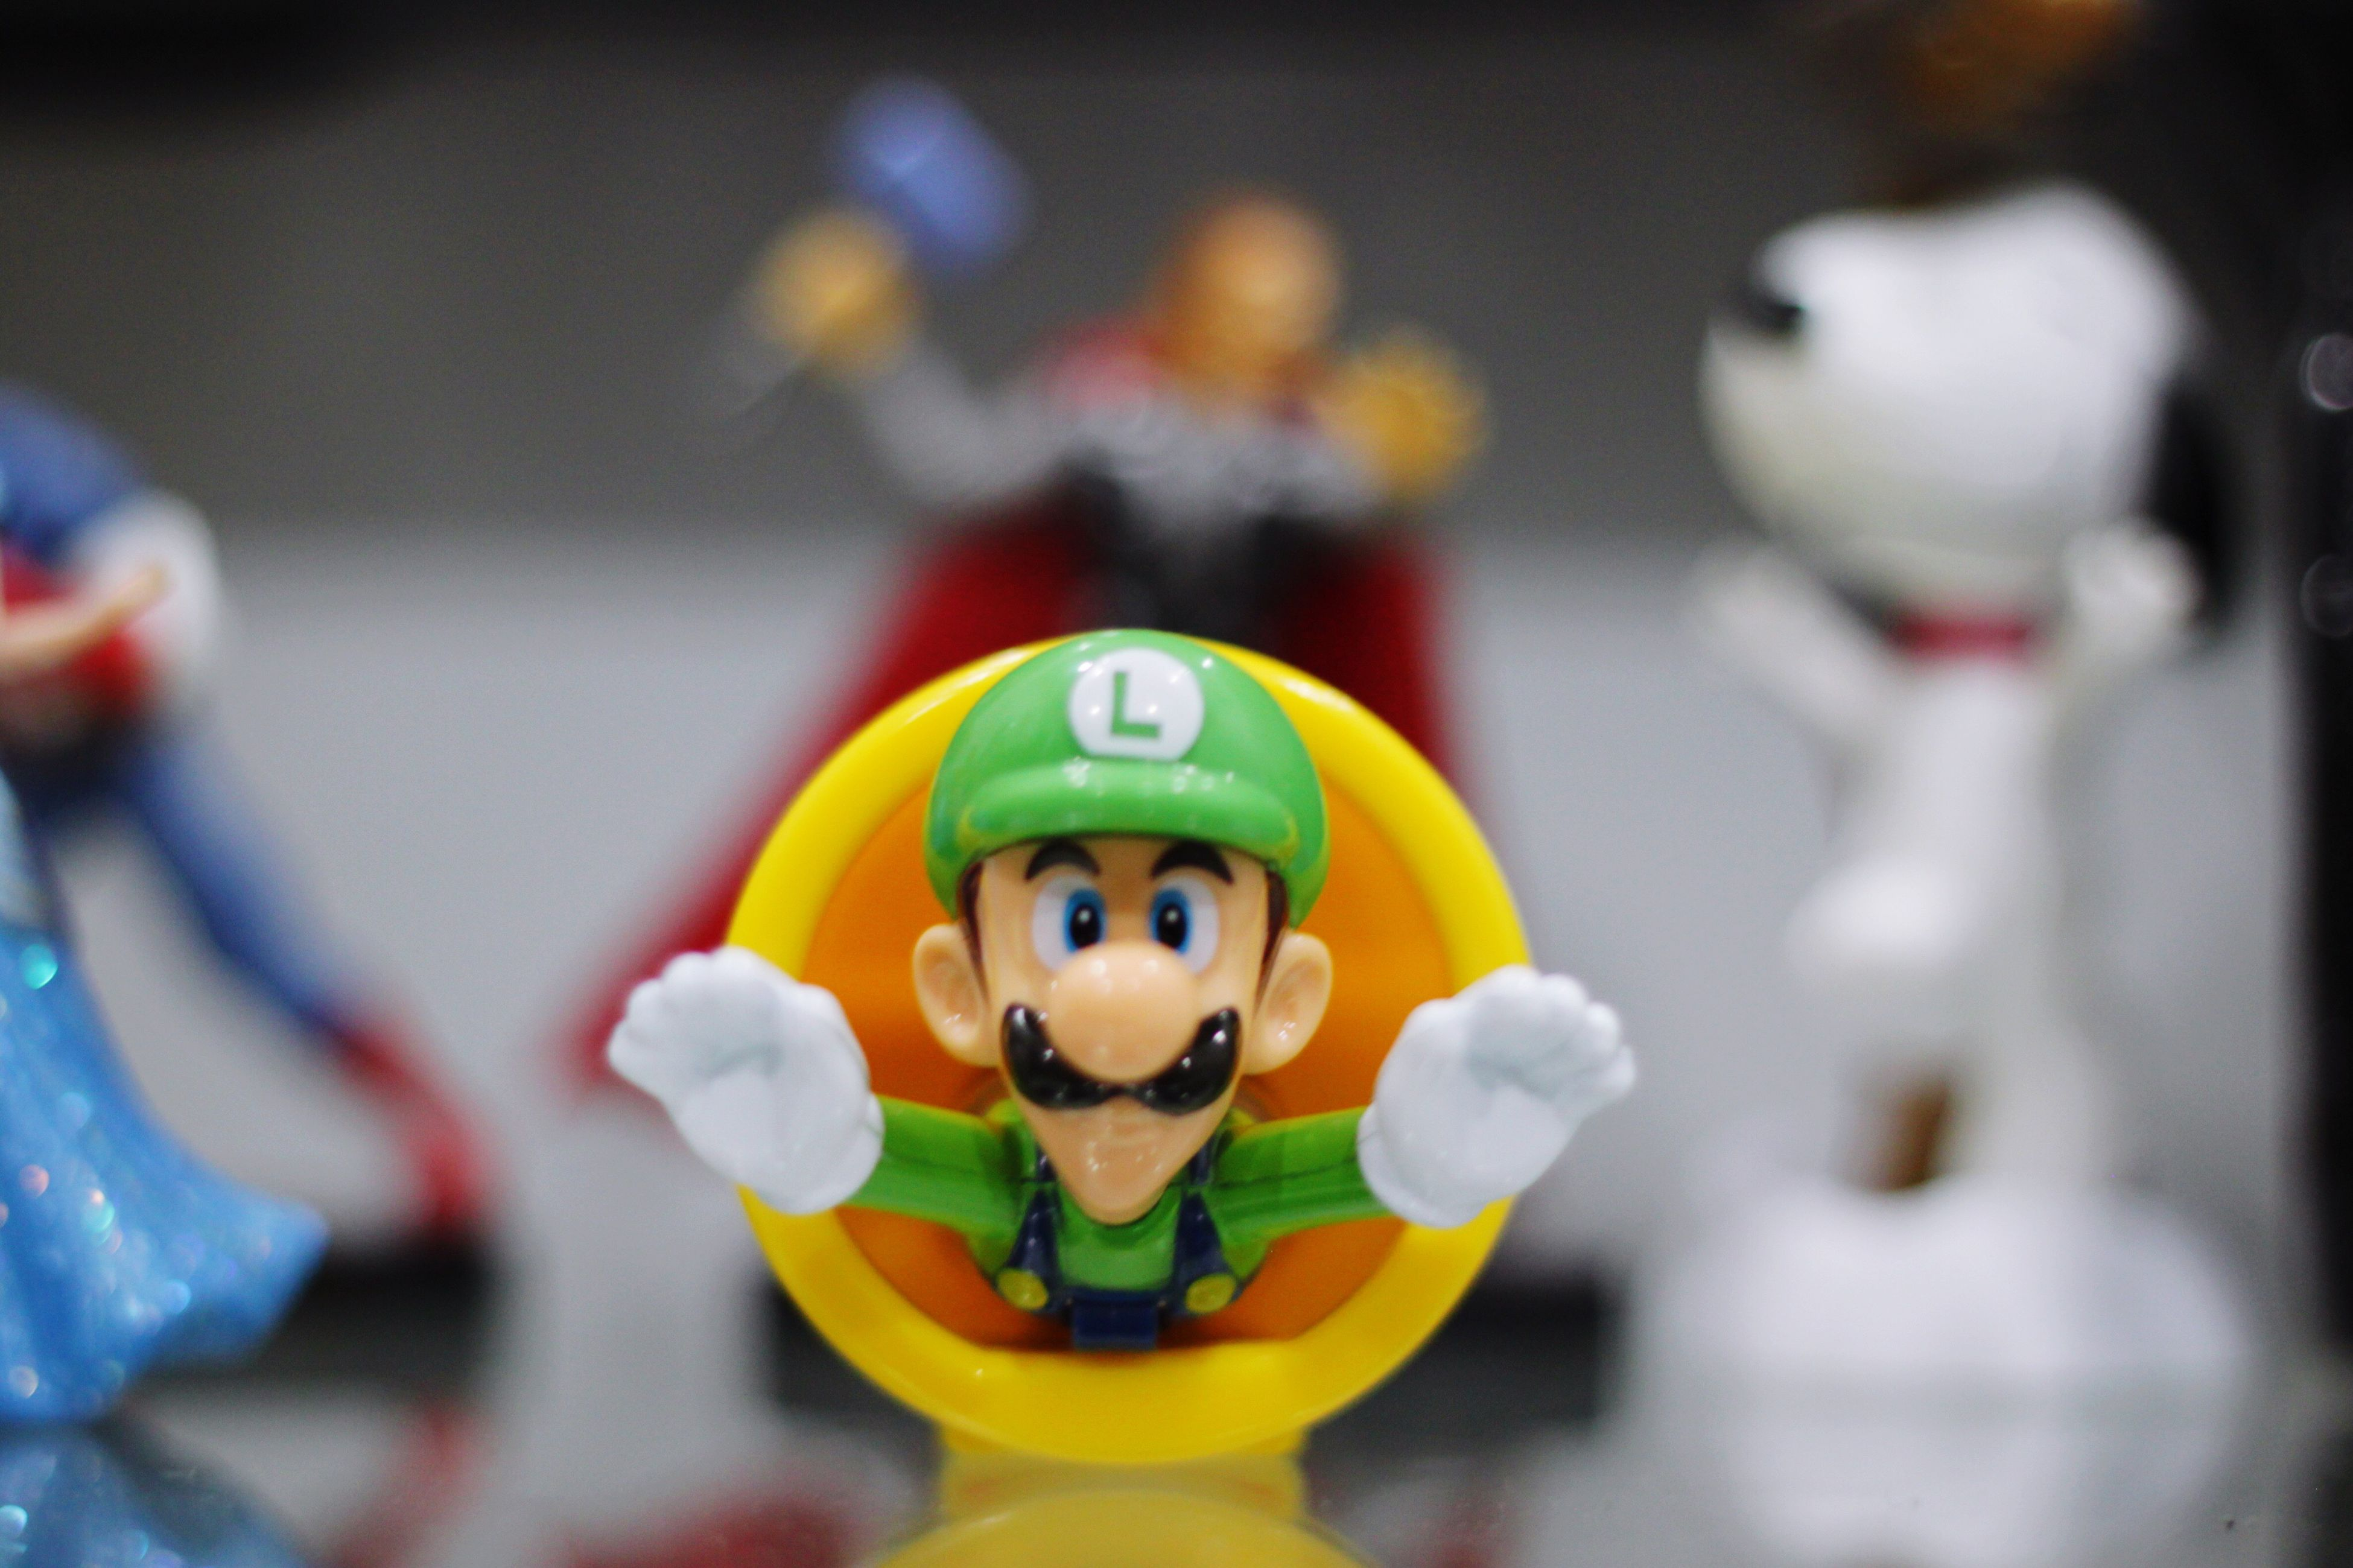 human representation, male likeness, toy, art and craft, focus on foreground, figurine, selective focus, helmet, indoors, no people, close-up, day, anthropomorphic face, clown